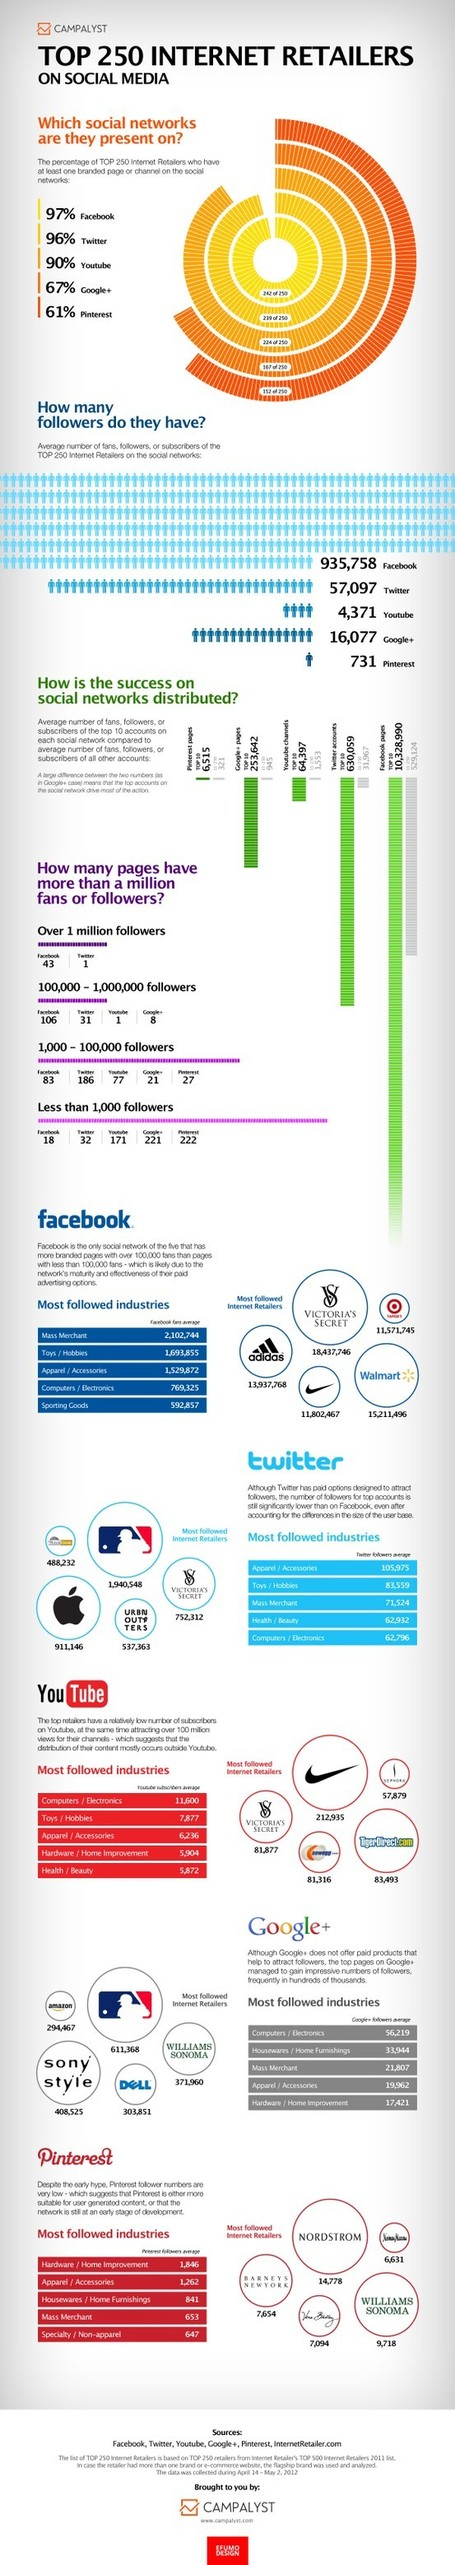 The Top 250 Internet Retailers on Social Media | Social Media Pearls | Scoop.it